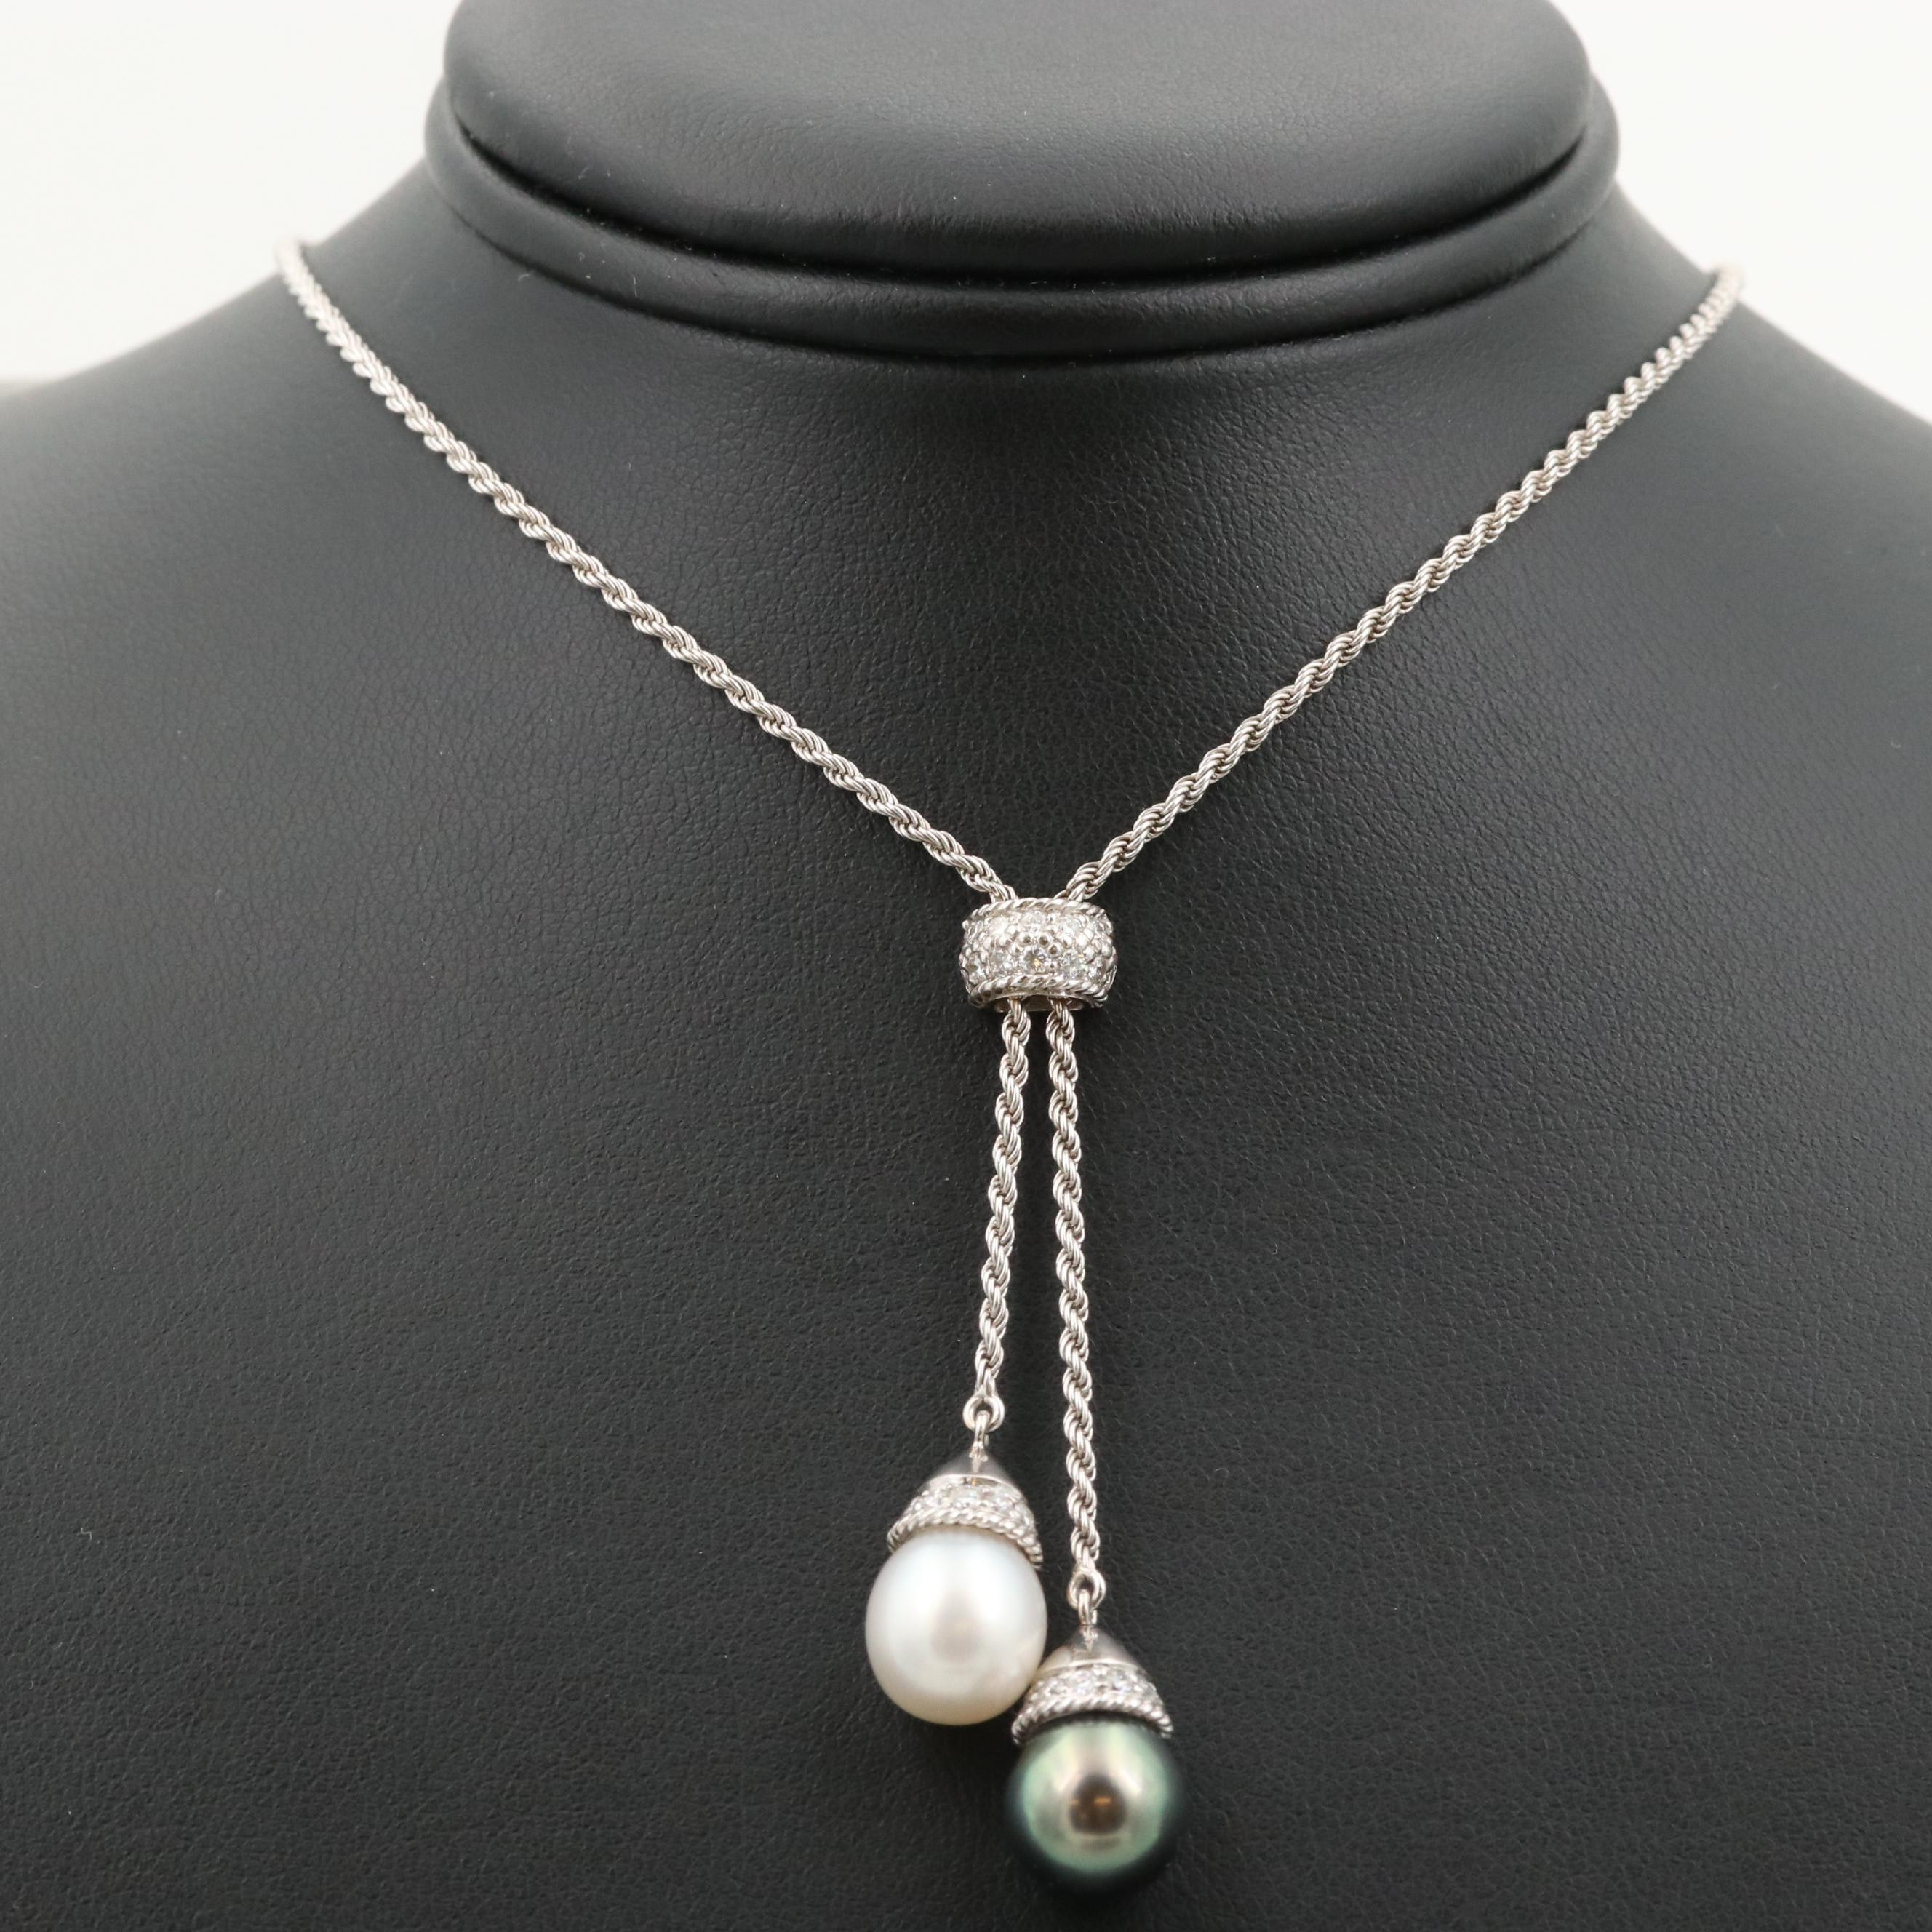 Penny Preville 18K White Gold Cultured Pearl and Diamond Lariat Necklace